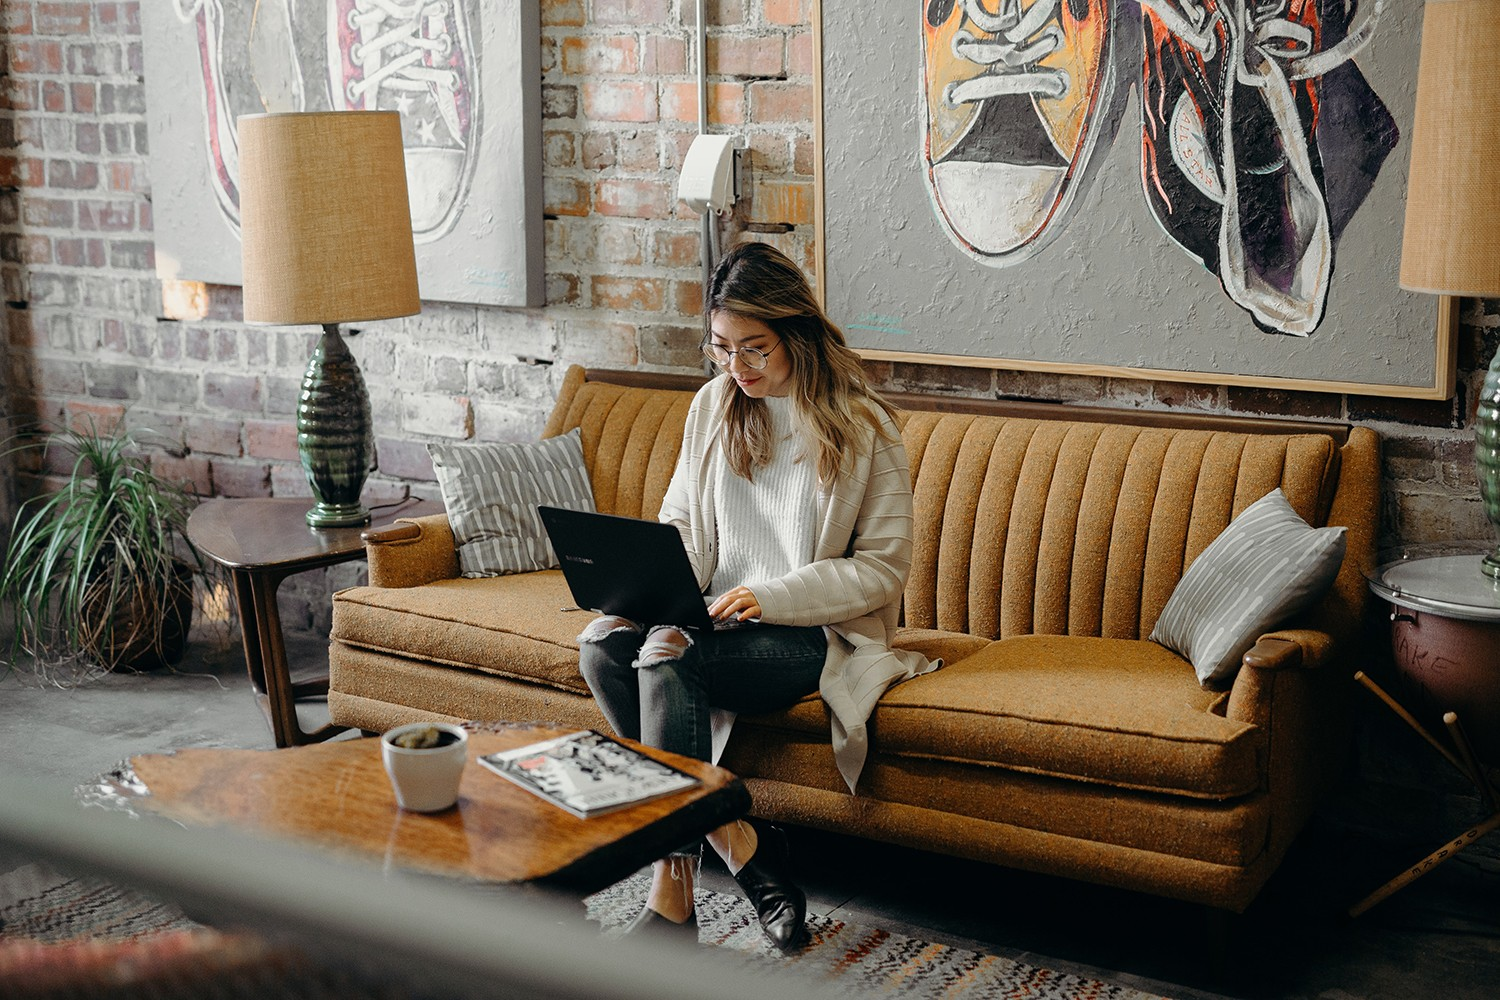 Woman working from cafe on mustard couch and large coffee on the coffee table in front of her.